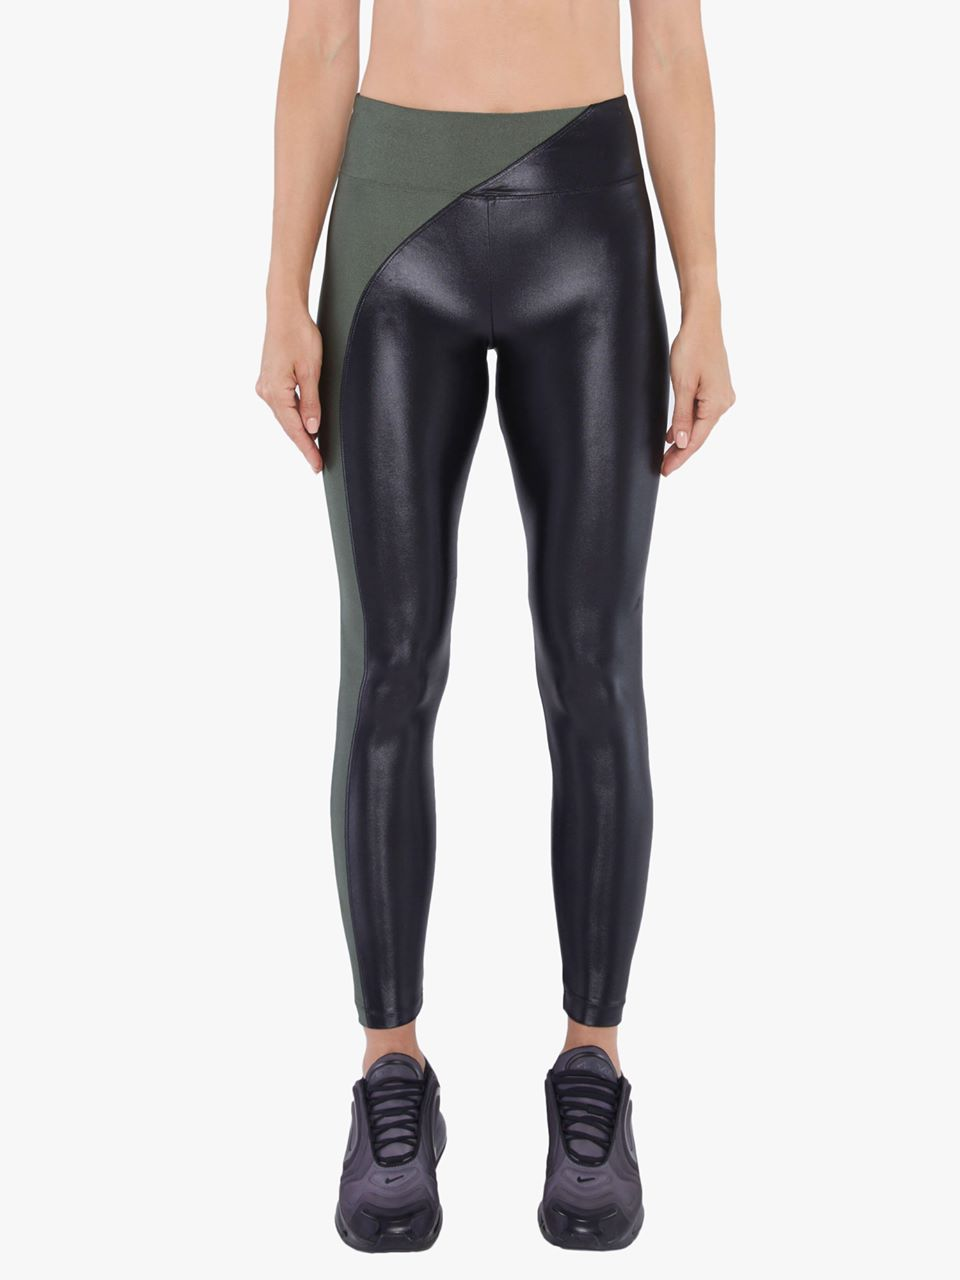 Chase Limitless Plus High Rise Legging